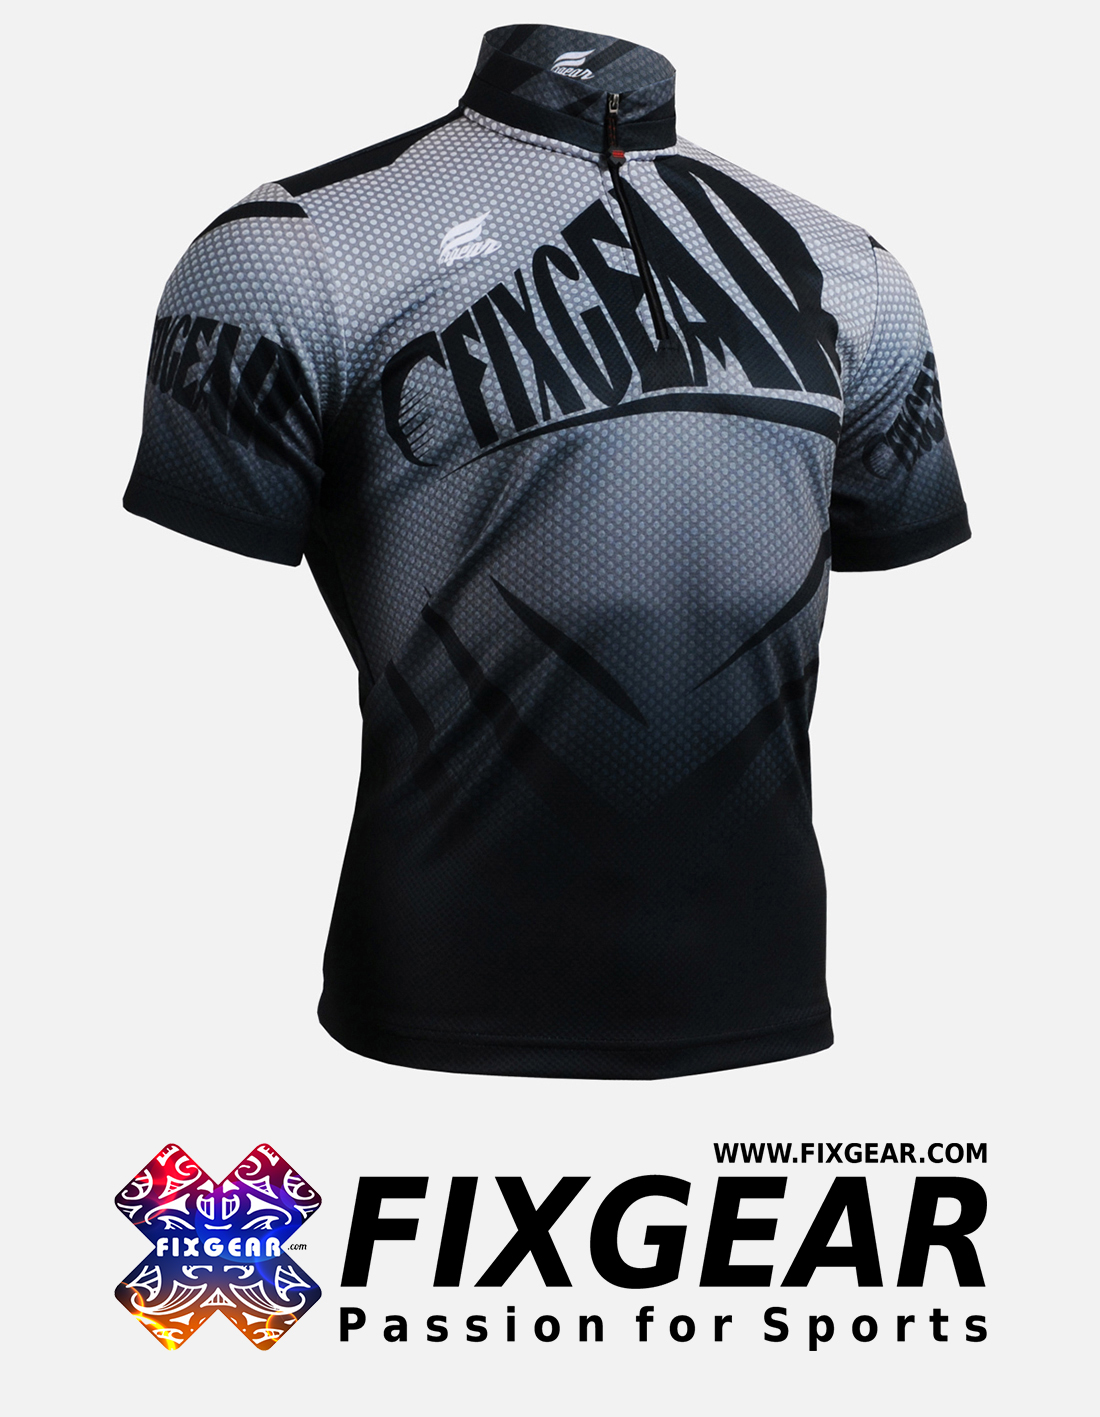 FIXGEAR BM-5702 Casual Men's short sleeve jersey 1/4 zip-up T-Shirt